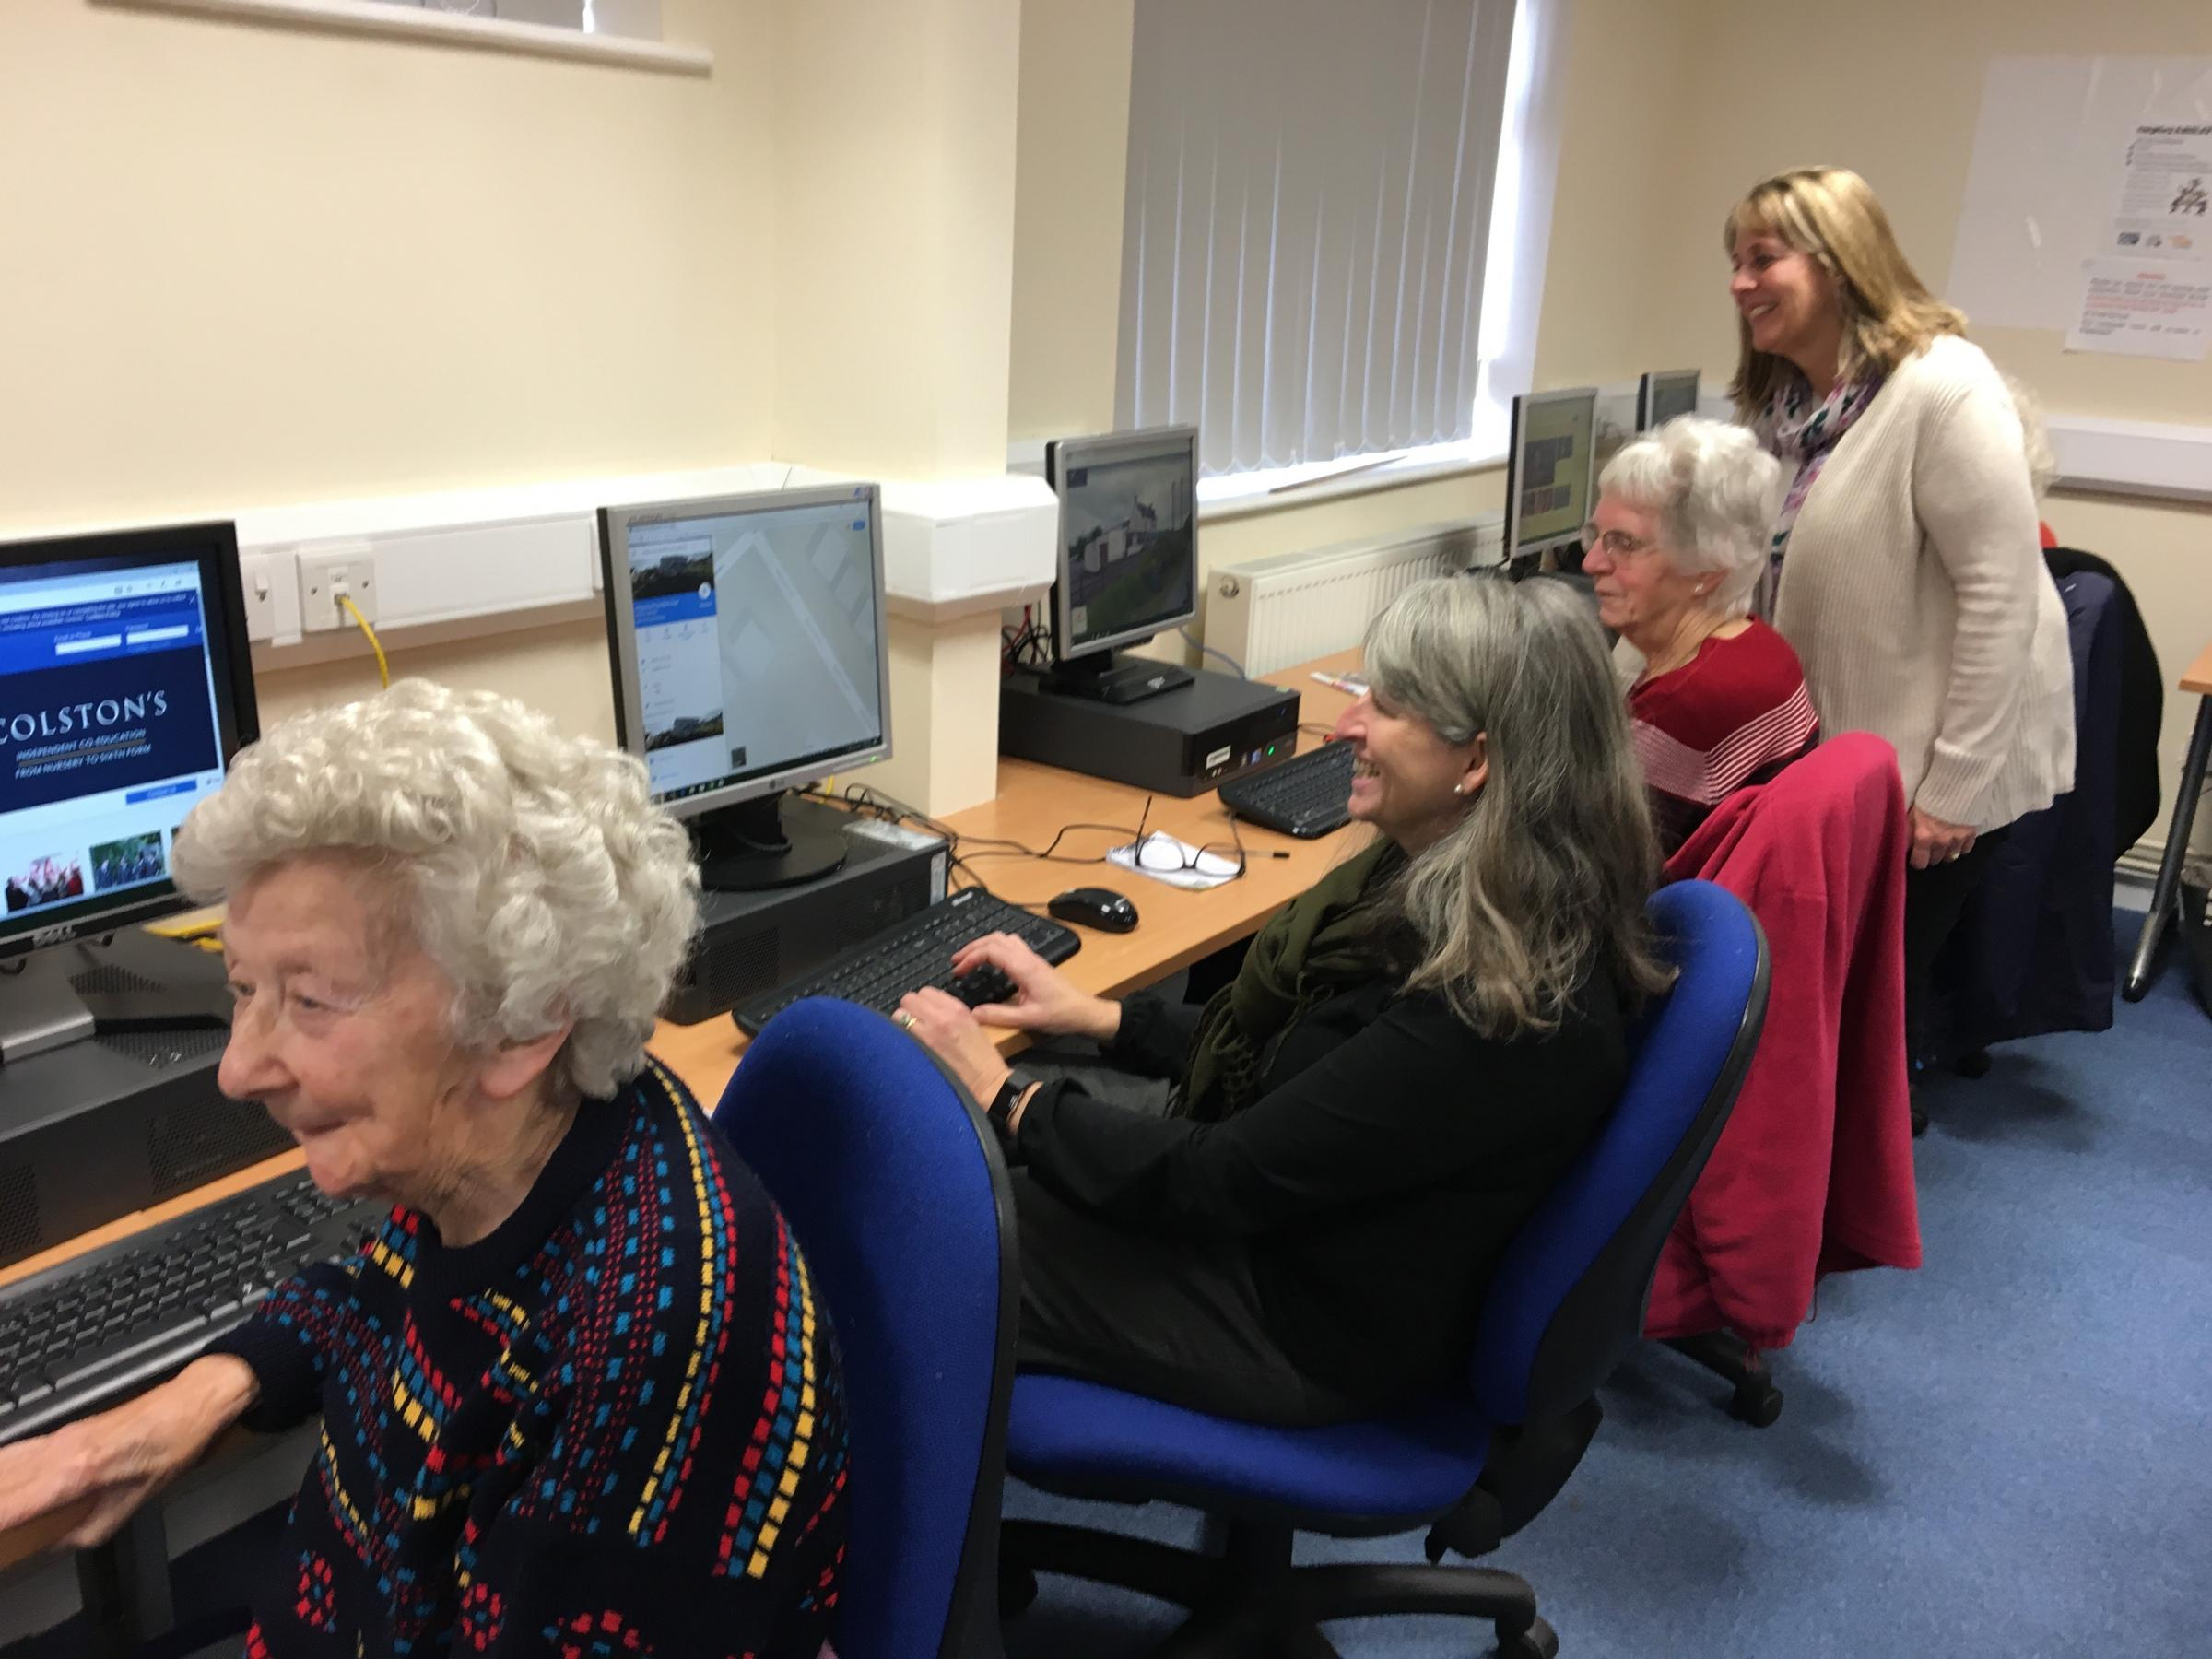 The new computers being used at GL11 Community Hub